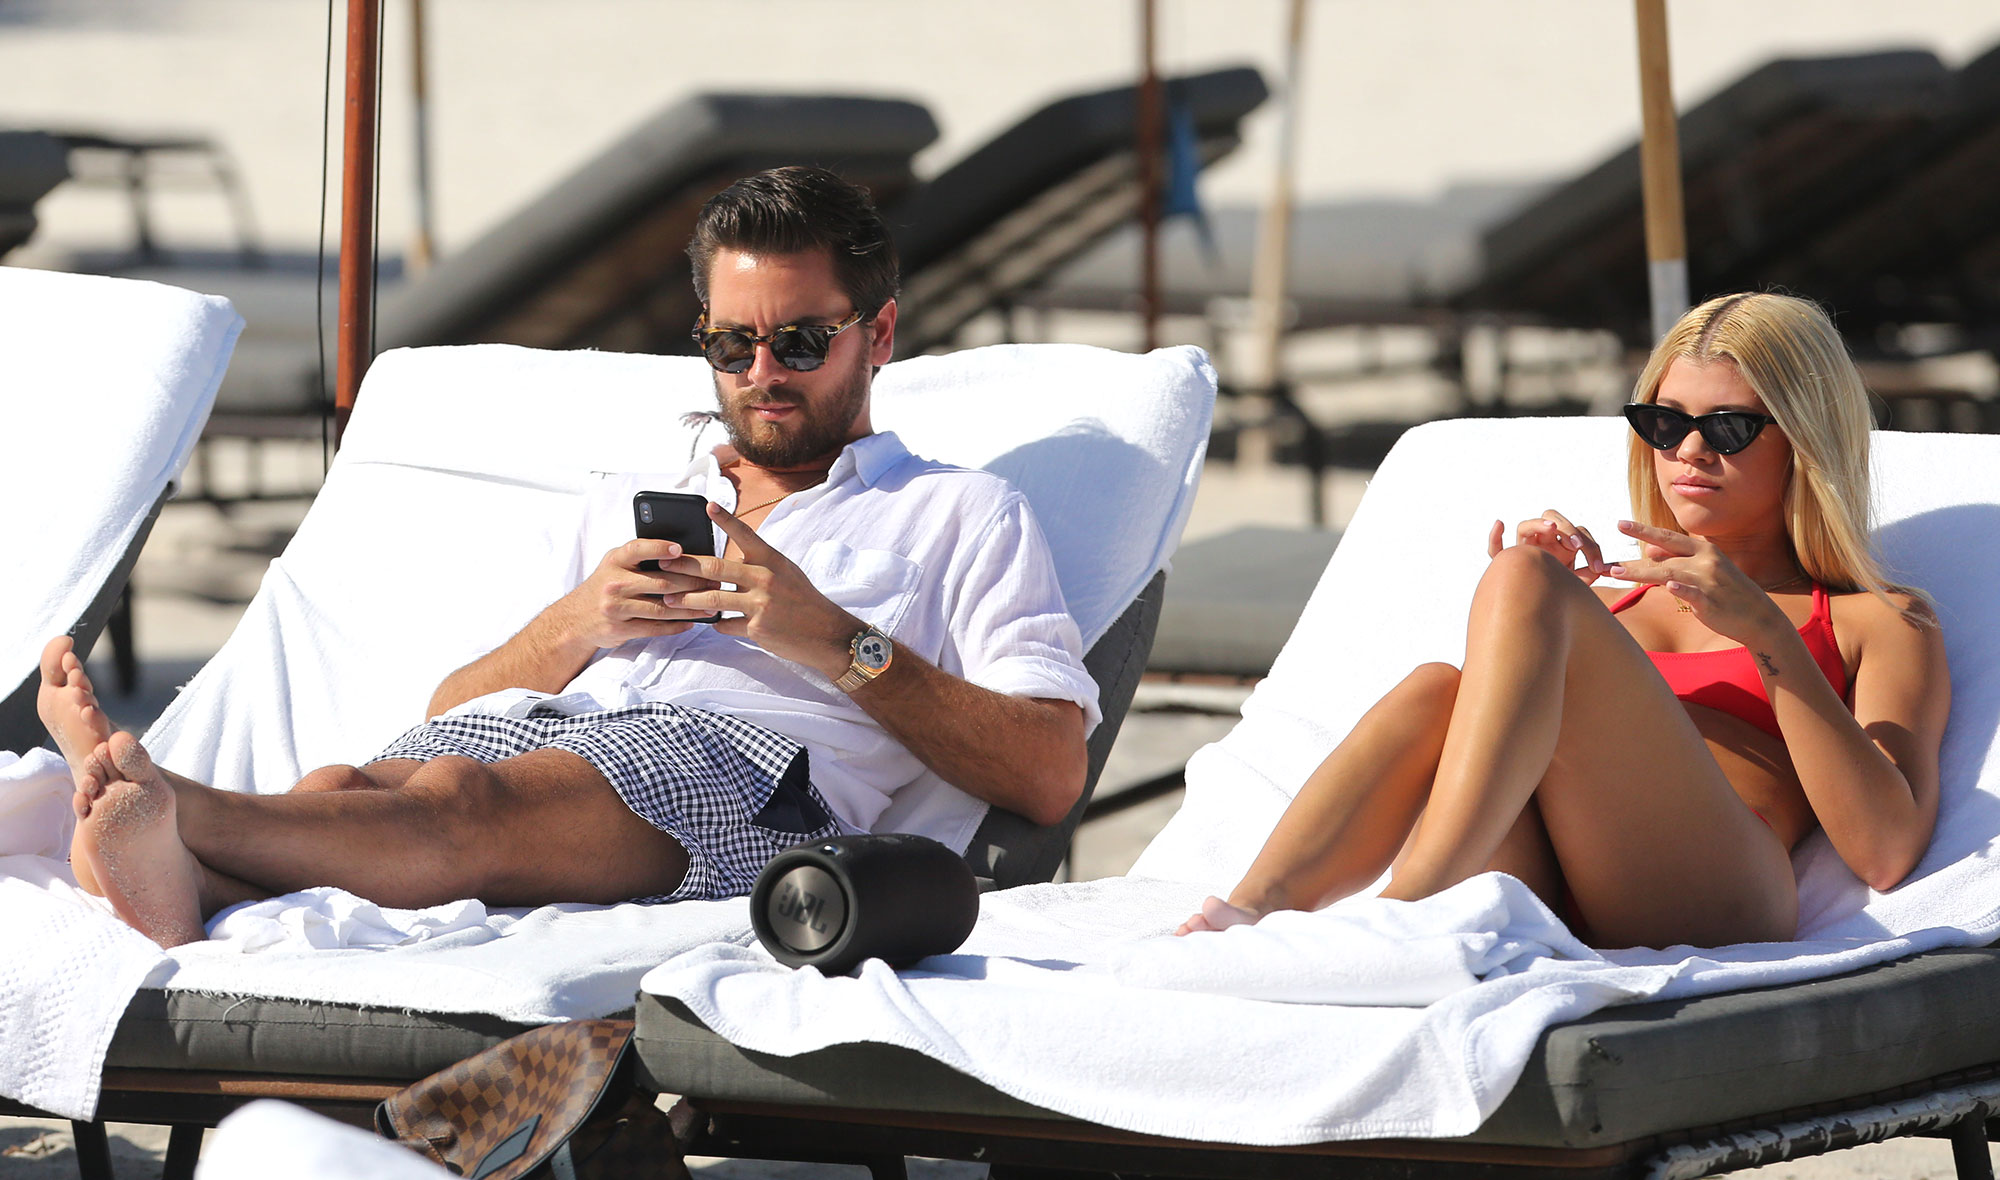 Scott Disick and Sofia Richie Enjoy Their Beachside Vacation Together